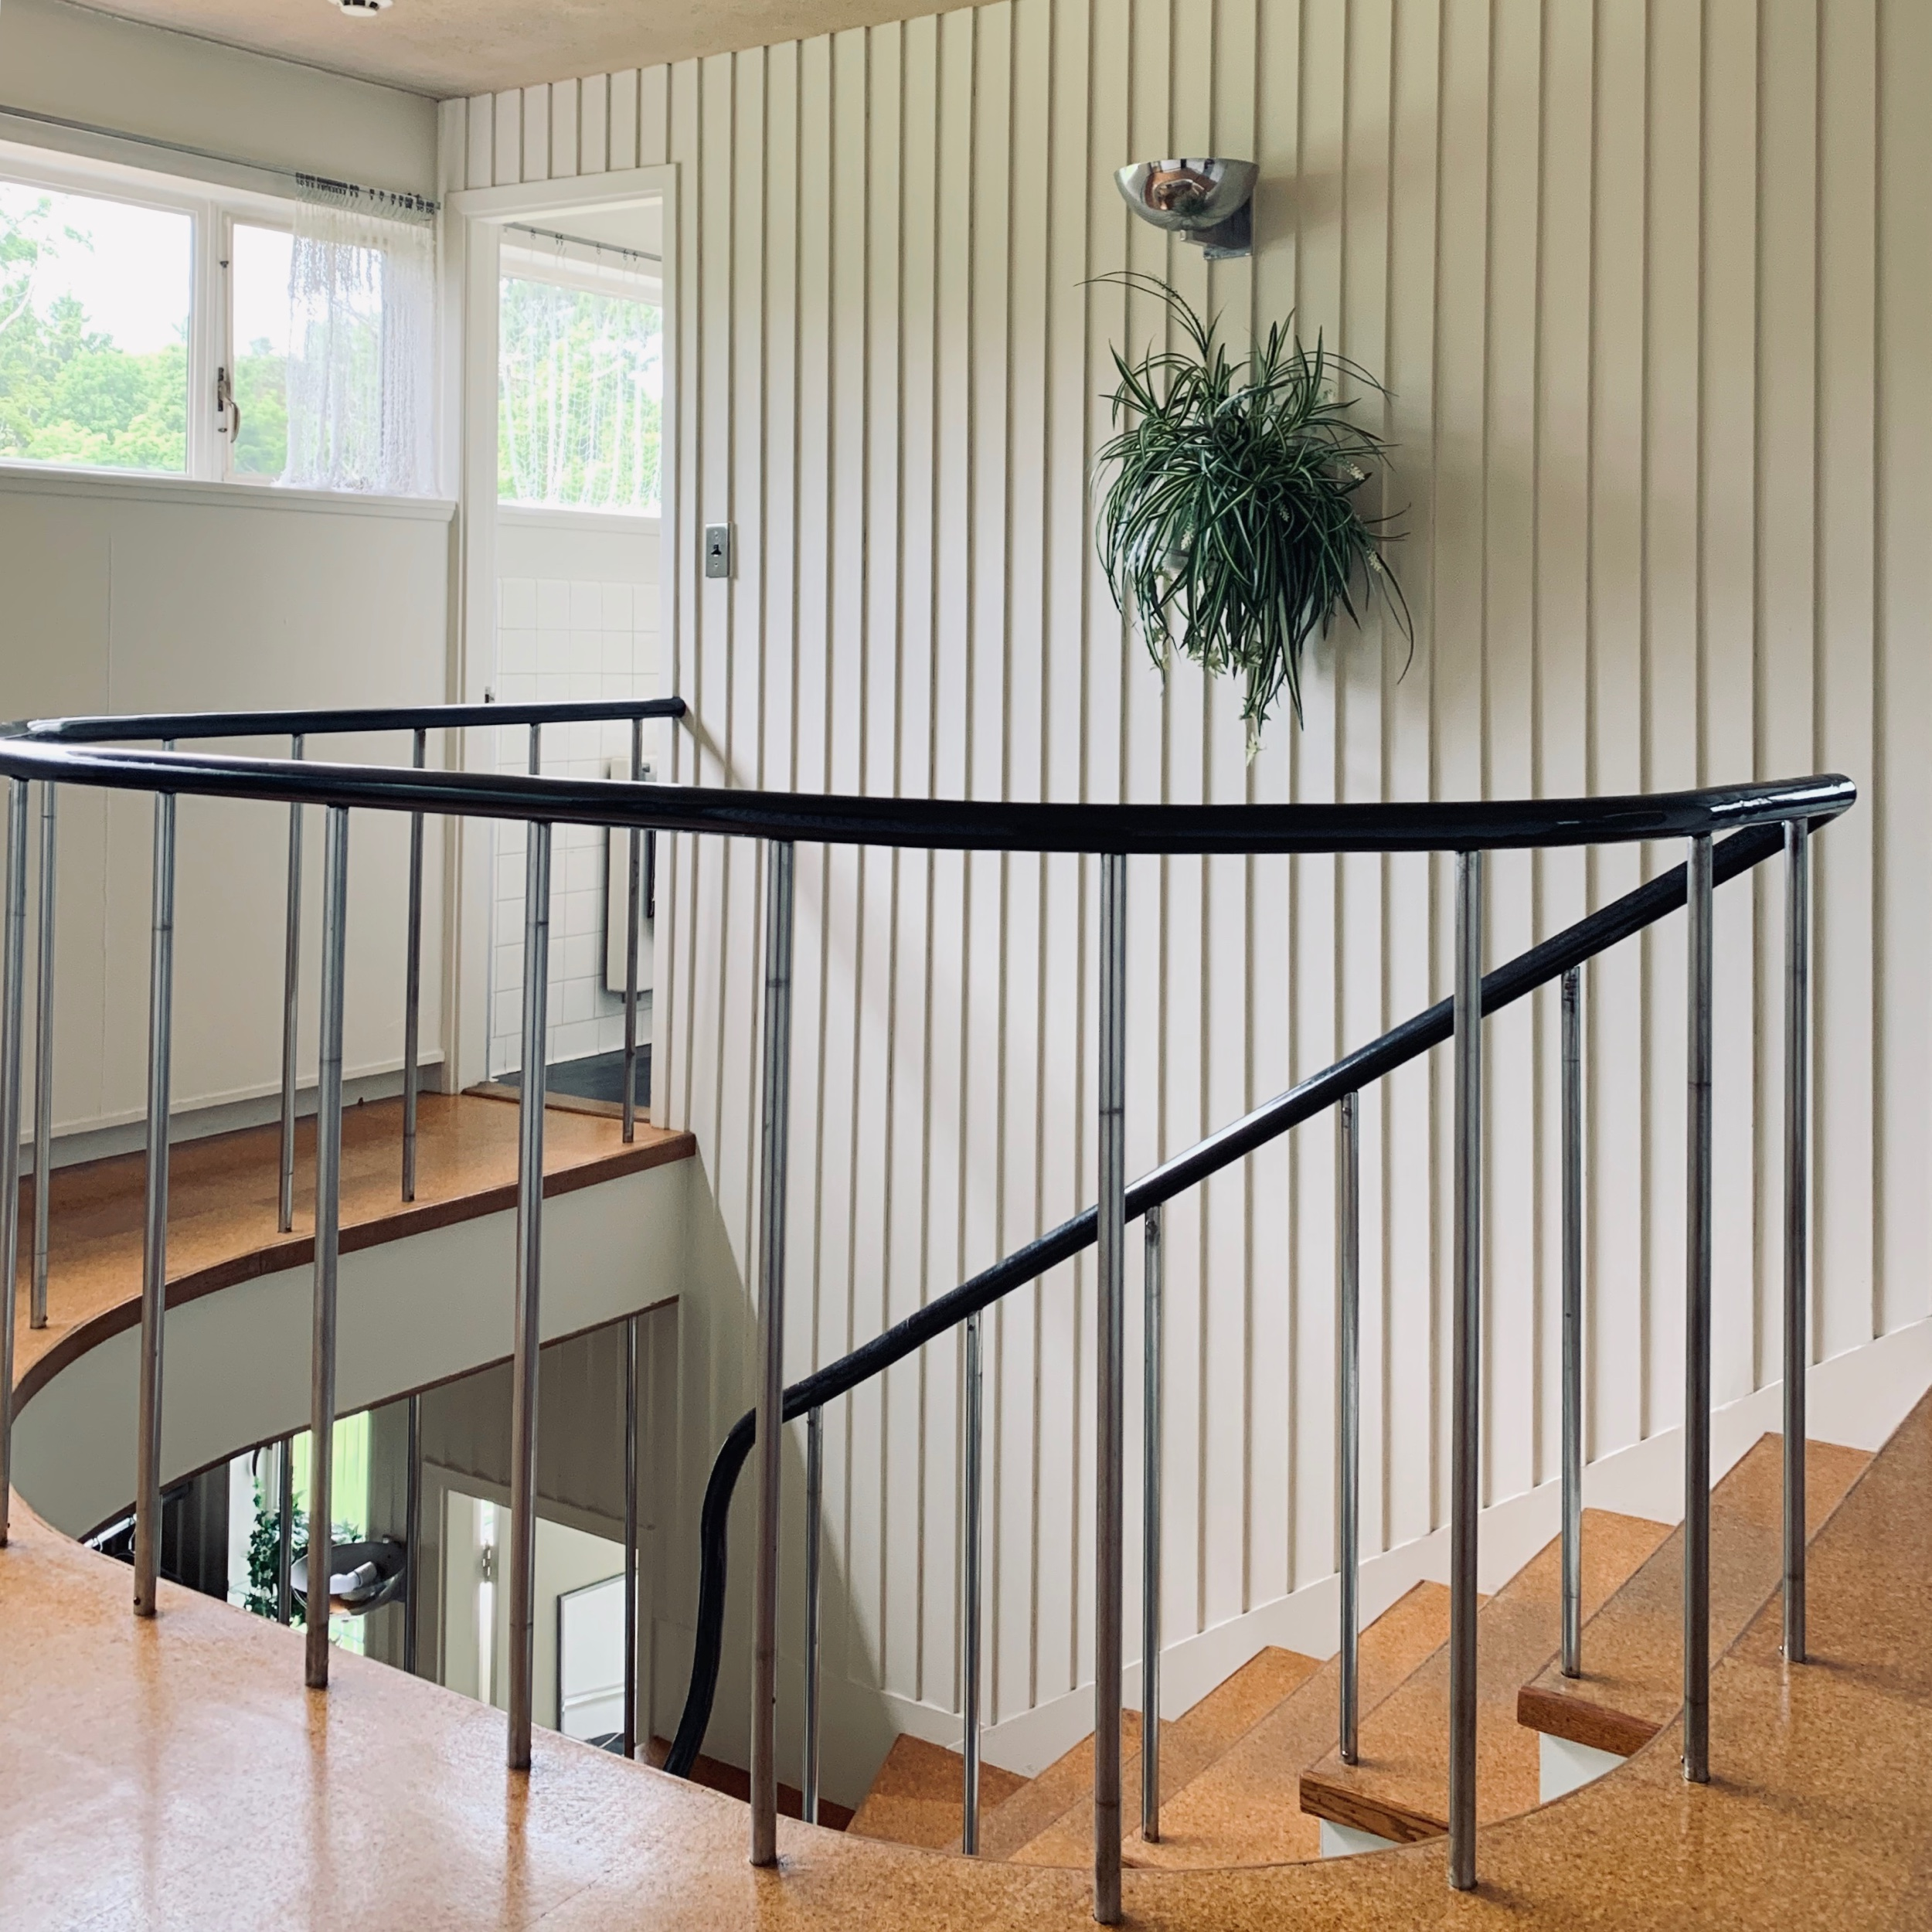 The stair and public floors are clad in Cork Tiles. The stair case design and balustrade rails are slightly curved to reflect the New England vernacular.